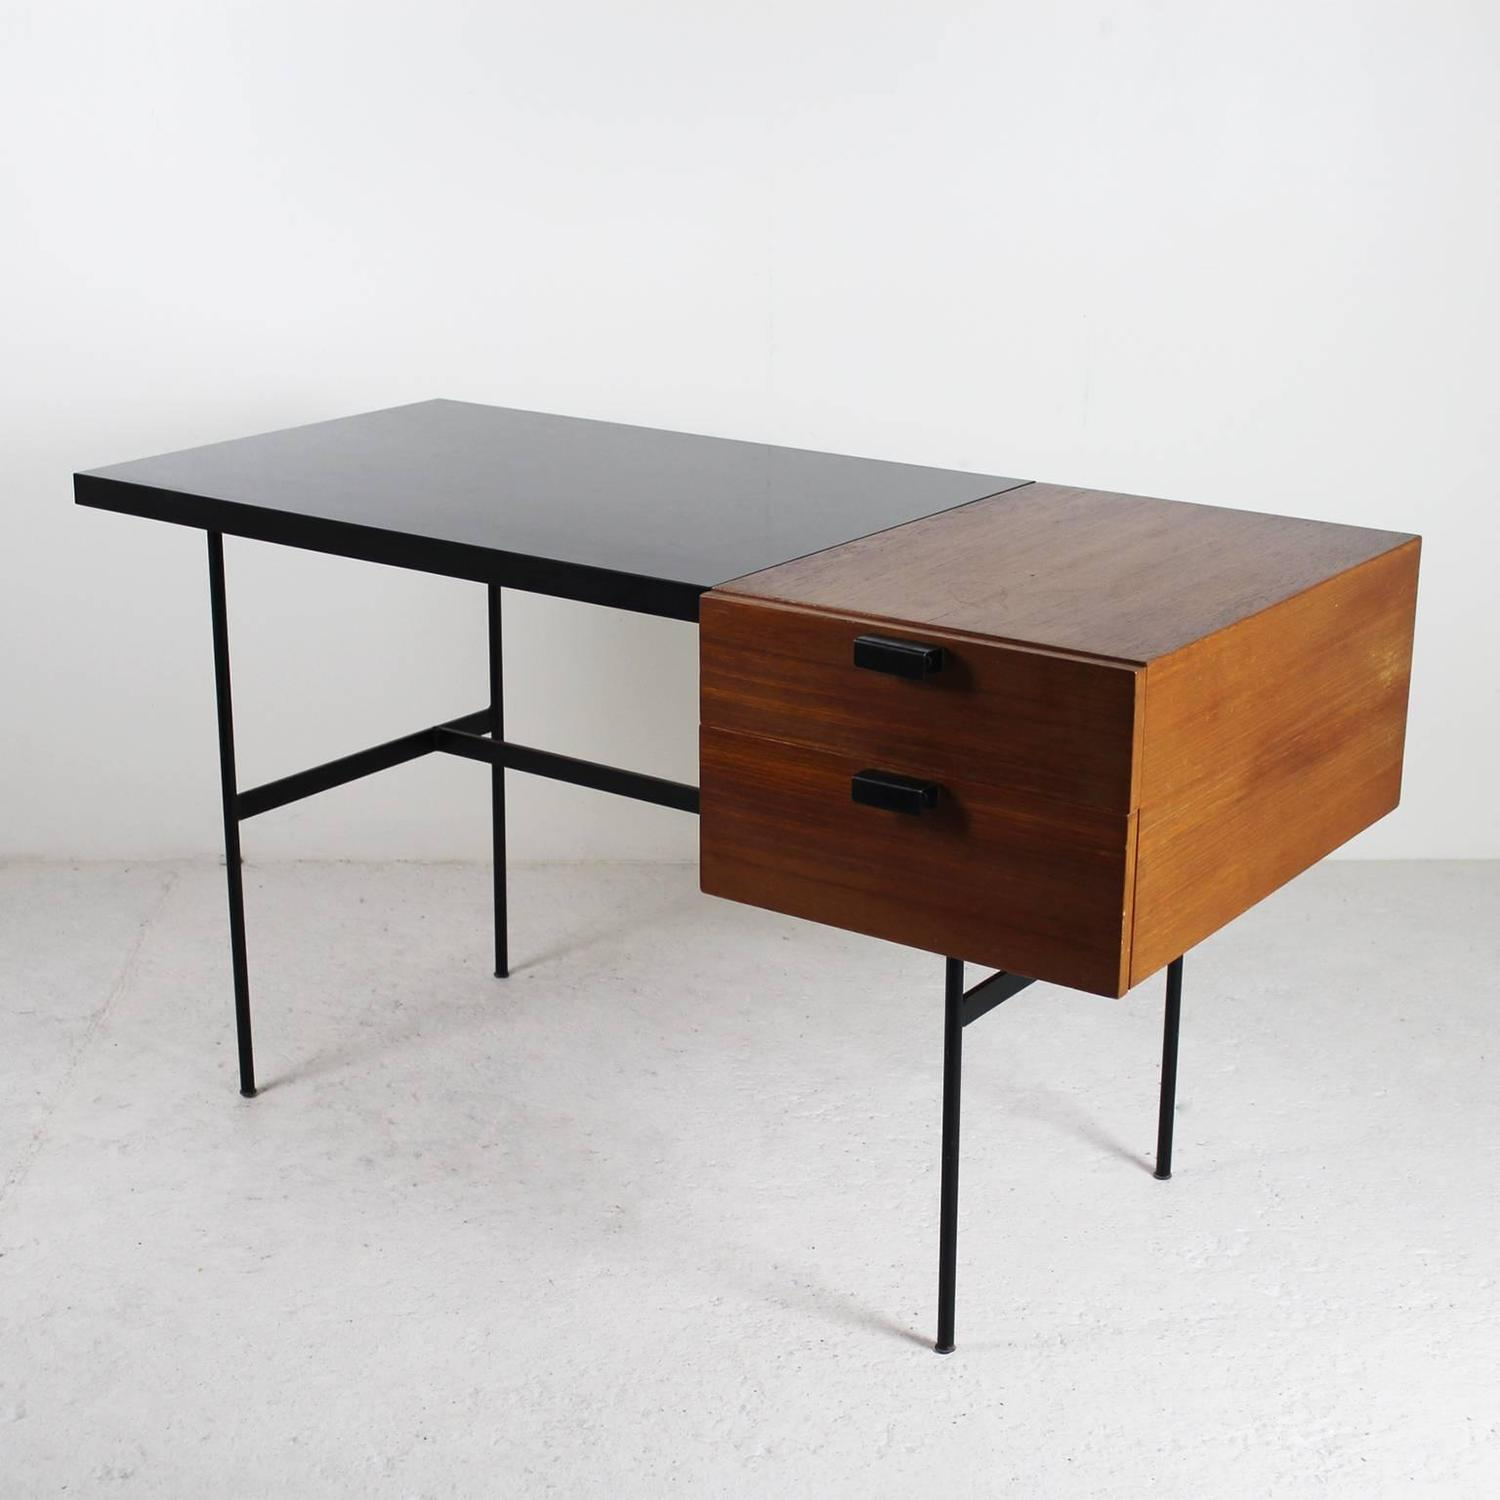 desk cm141 by pierre paulin thonet edition 1955 for sale at 1stdibs. Black Bedroom Furniture Sets. Home Design Ideas